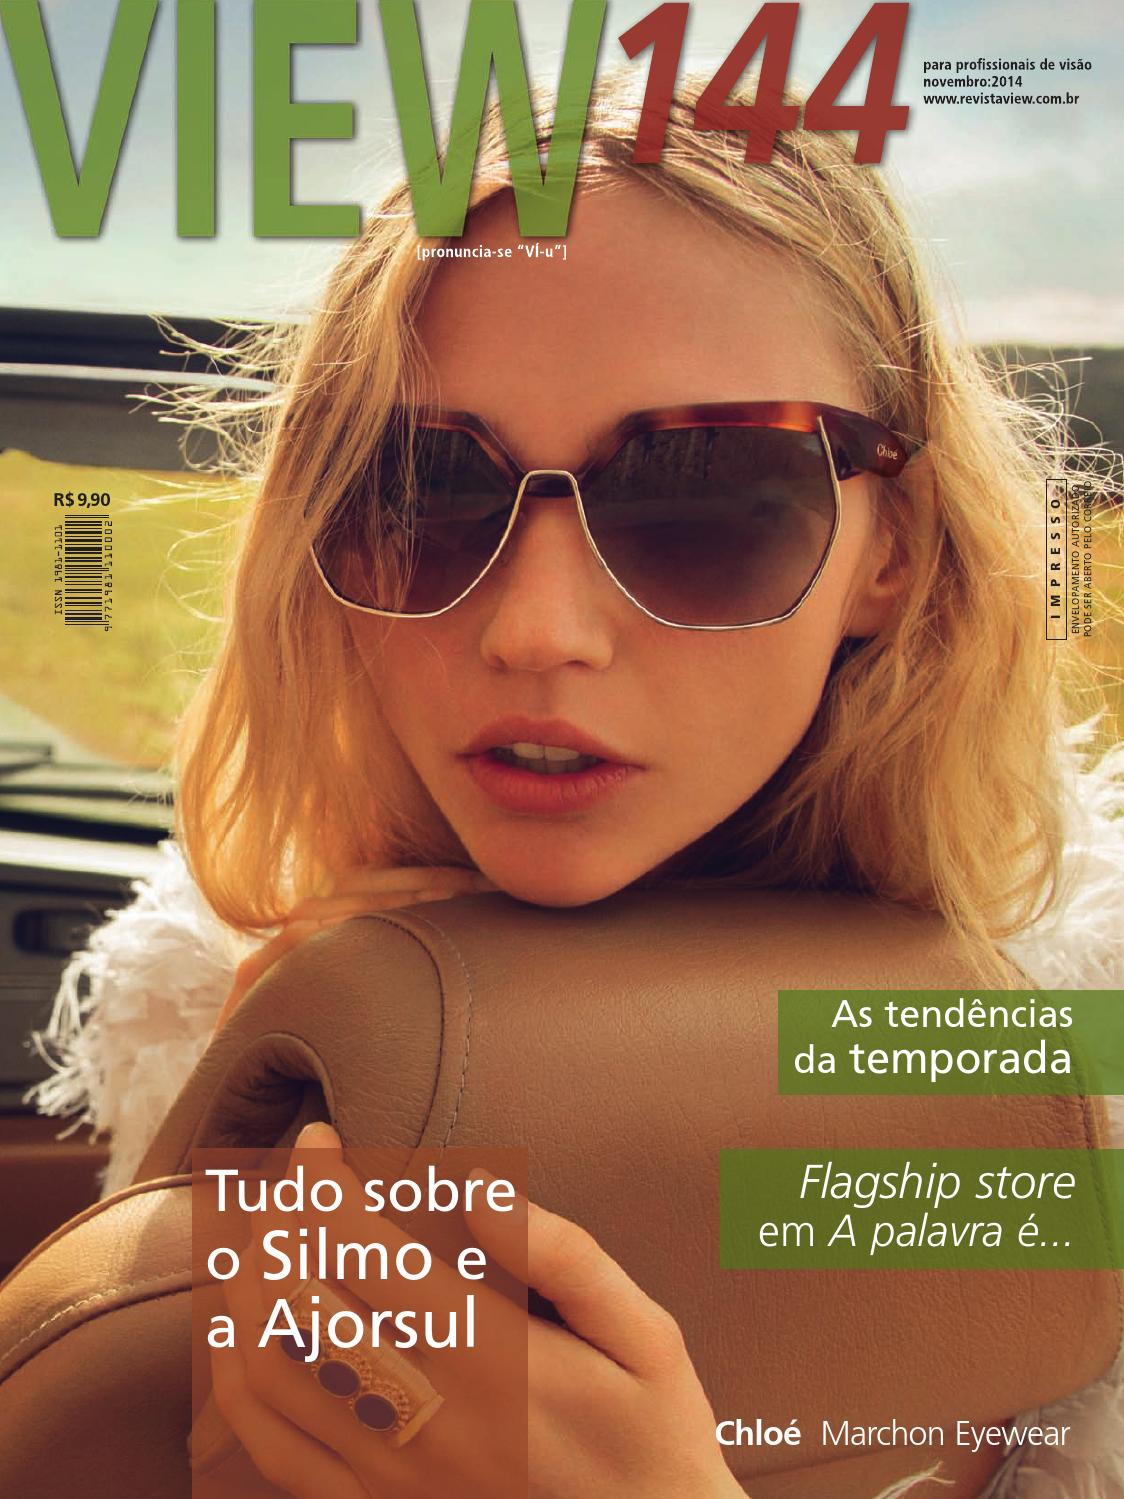 VIEW 144 by Revista VIEW - issuu c764e44631